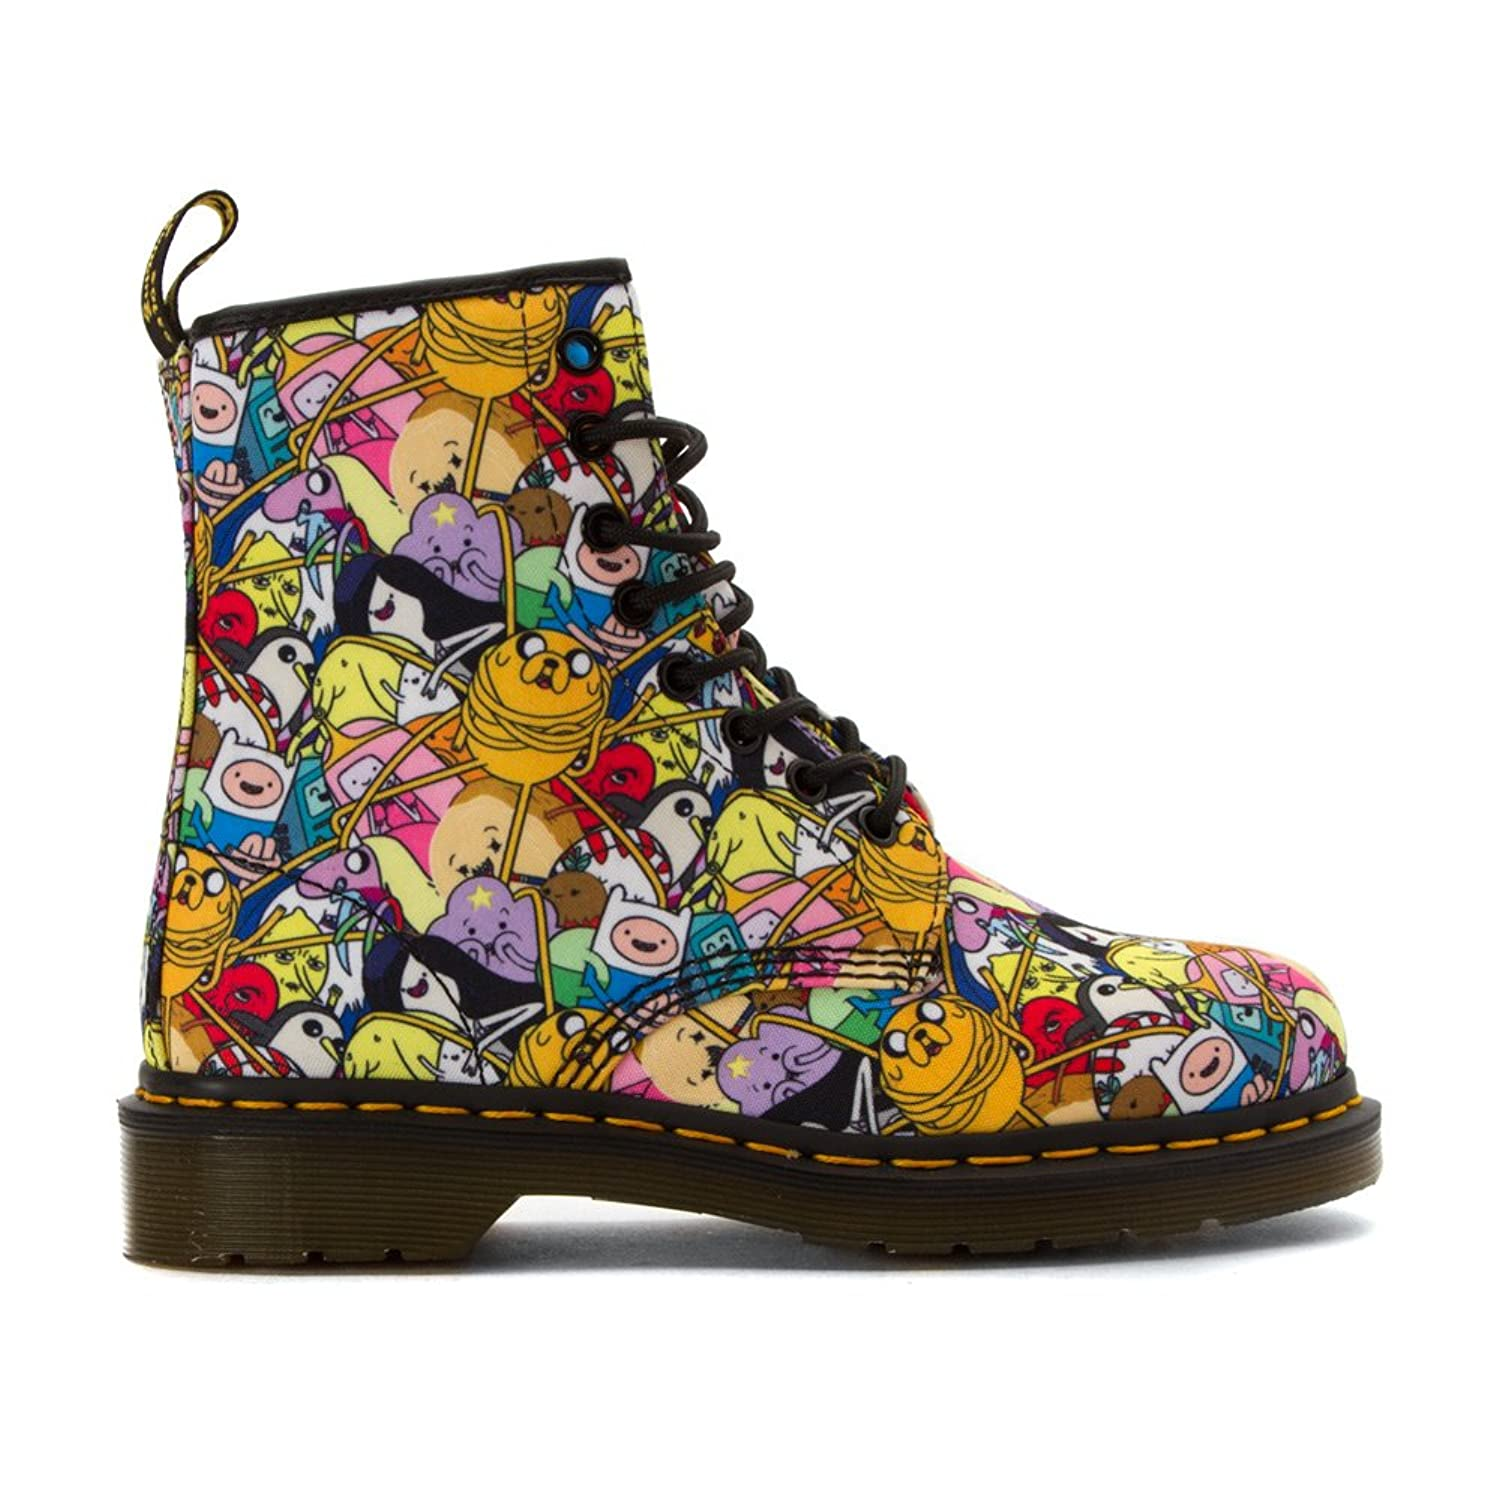 Dr. Martens Castel Toon 8 Eye Boot Ry52XYQ9